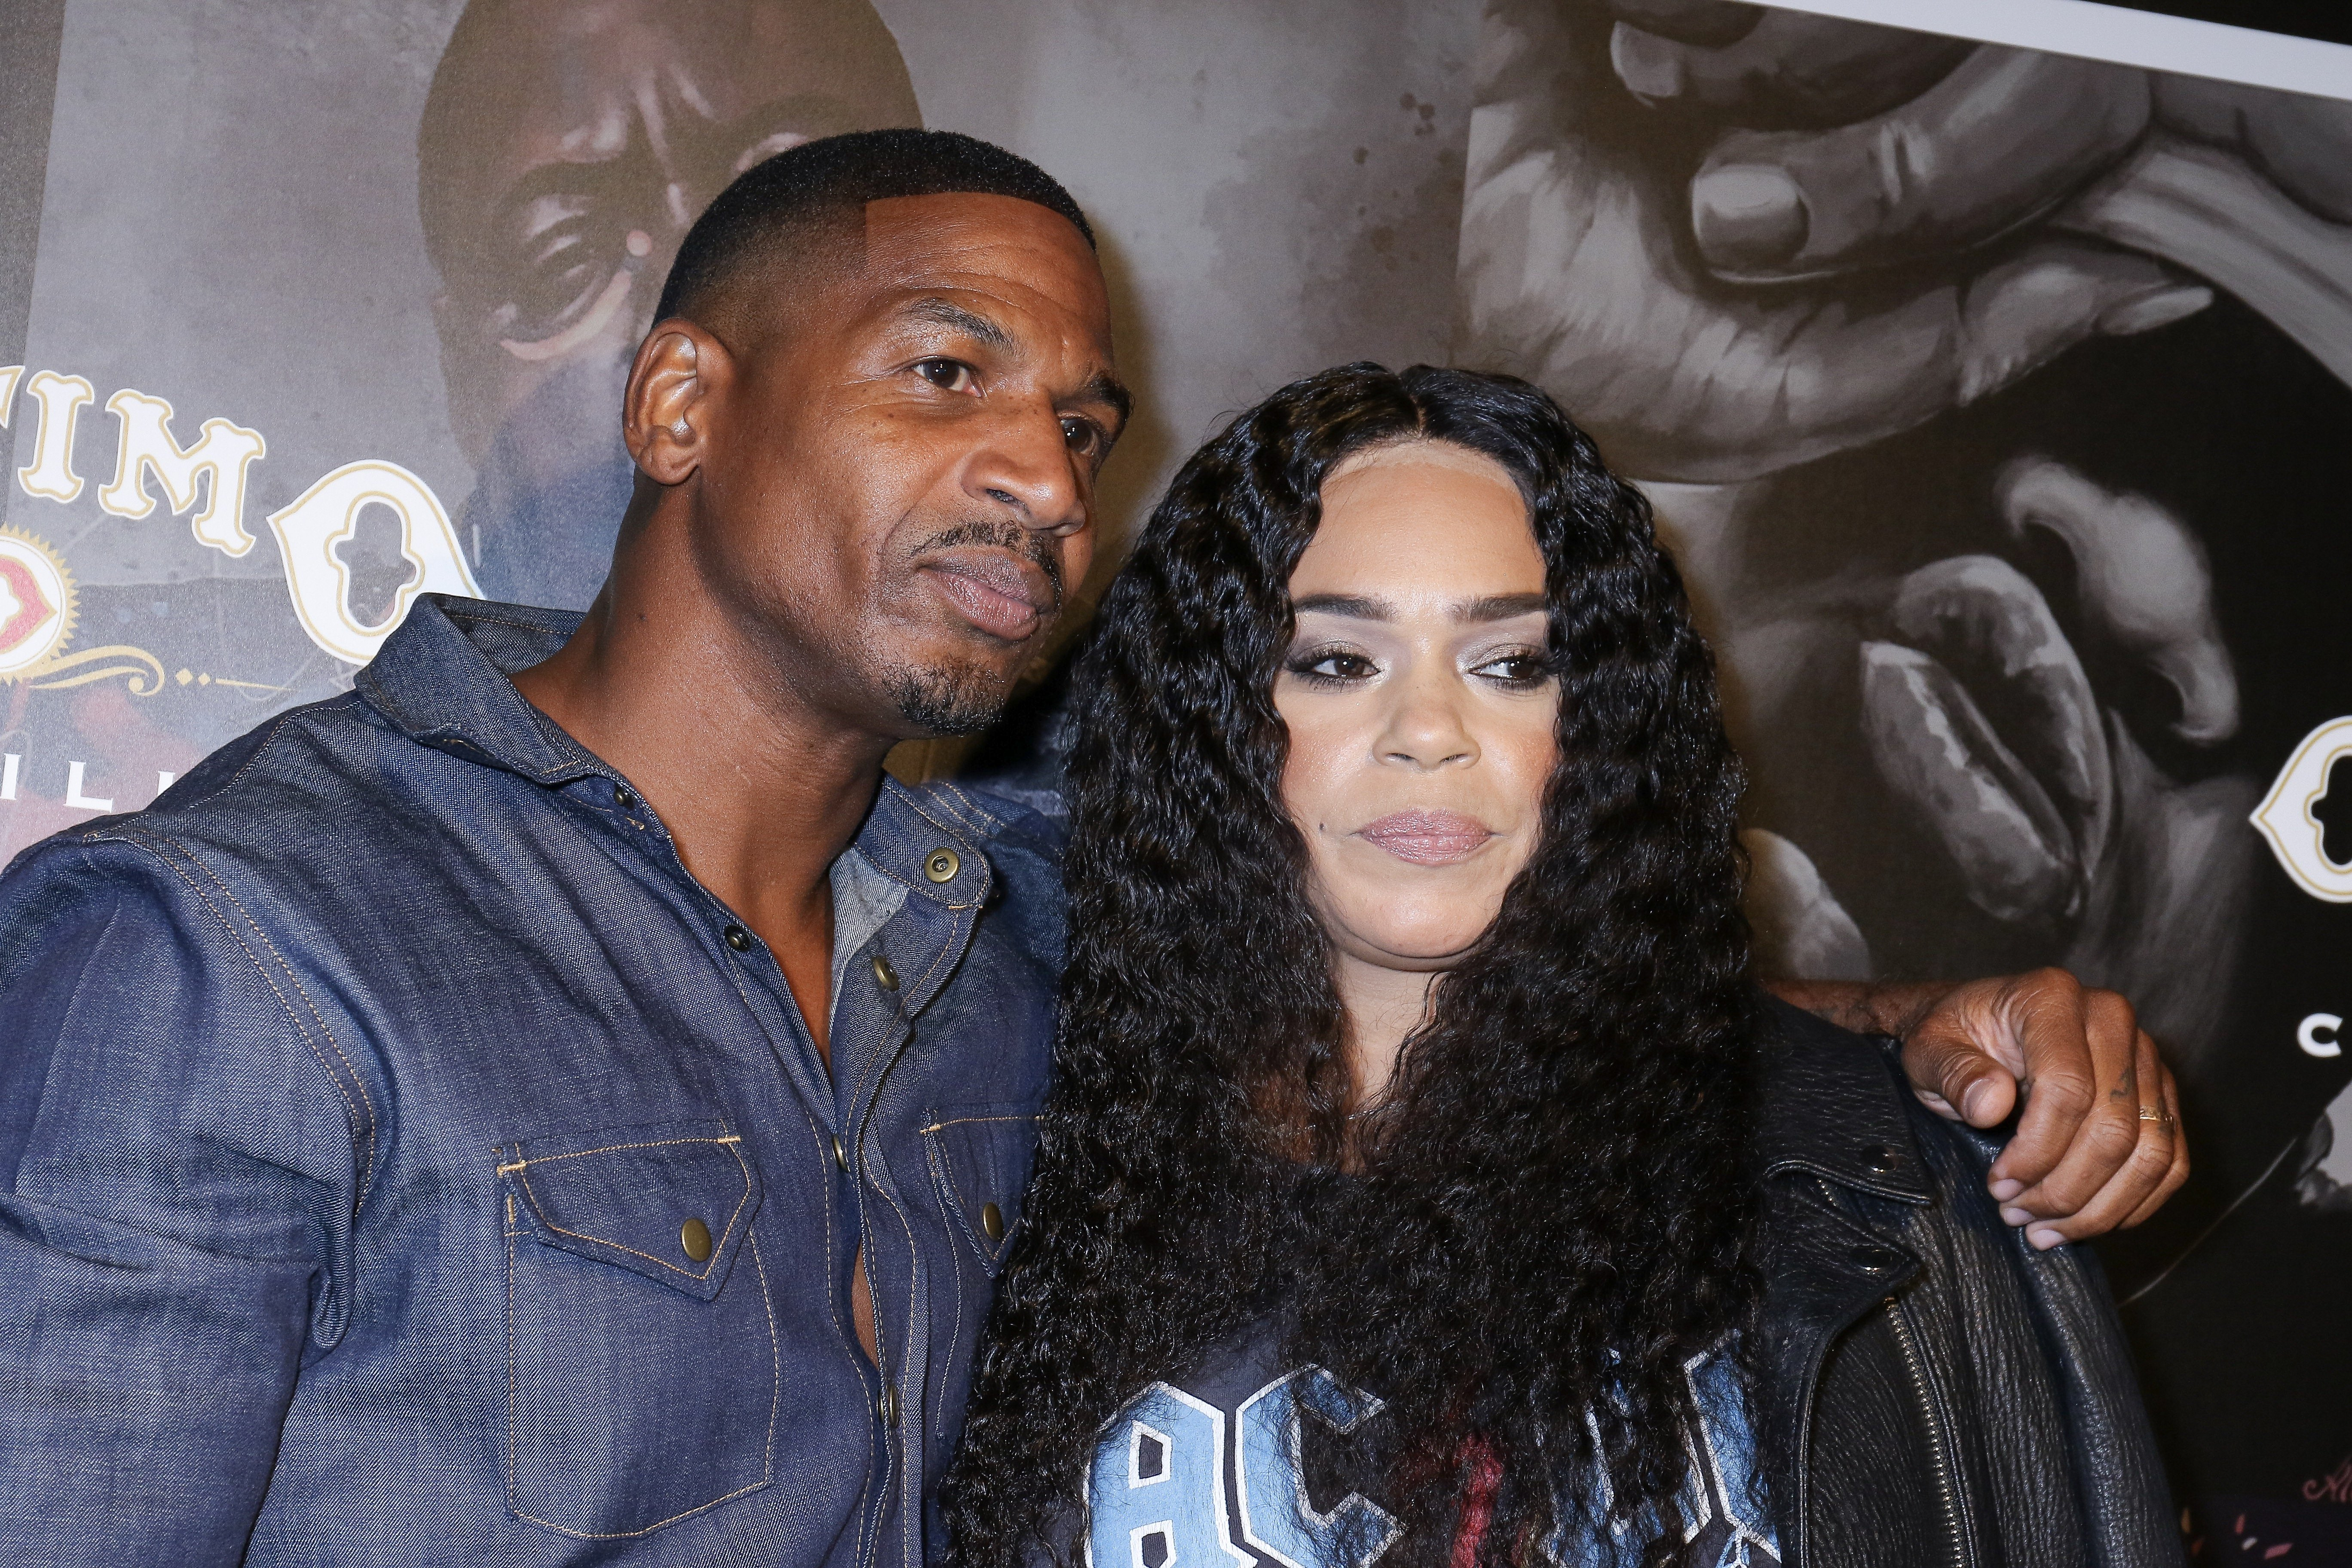 """Stevie J. and Faith Evans at the """"Biggie Inspires"""" Art Exhibit & Celebration at William Vale Hotel on September 13, 2019 in New York City. 